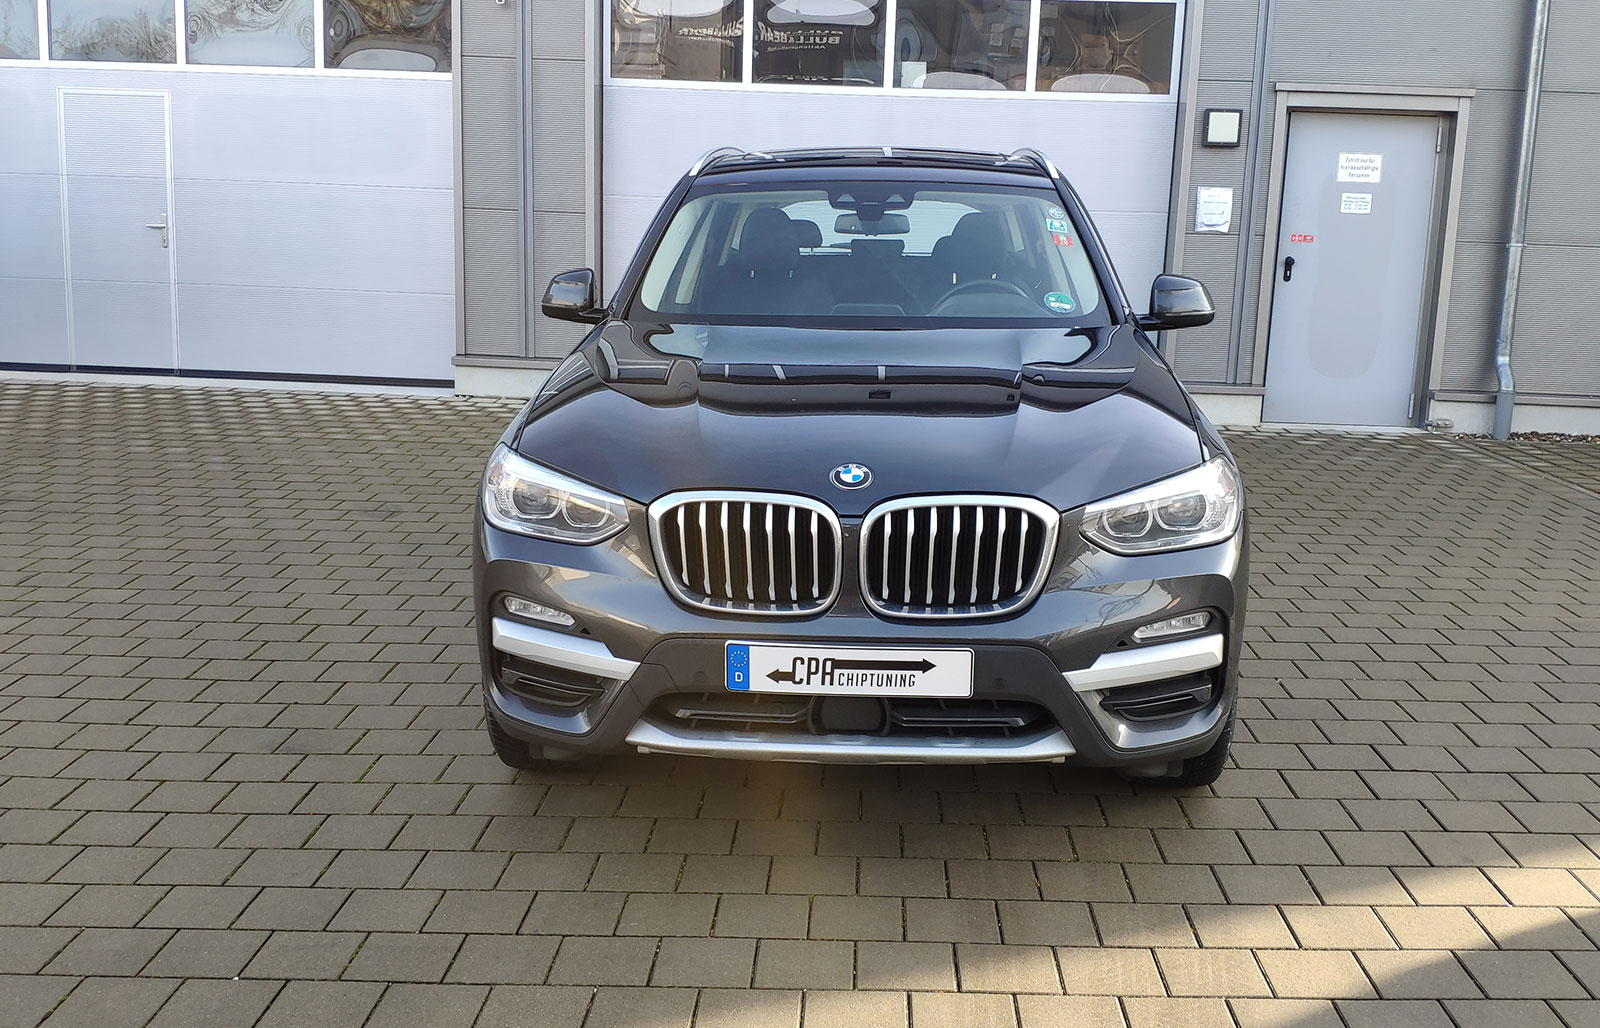 The BMW X3 (G01) xDrive20d testes